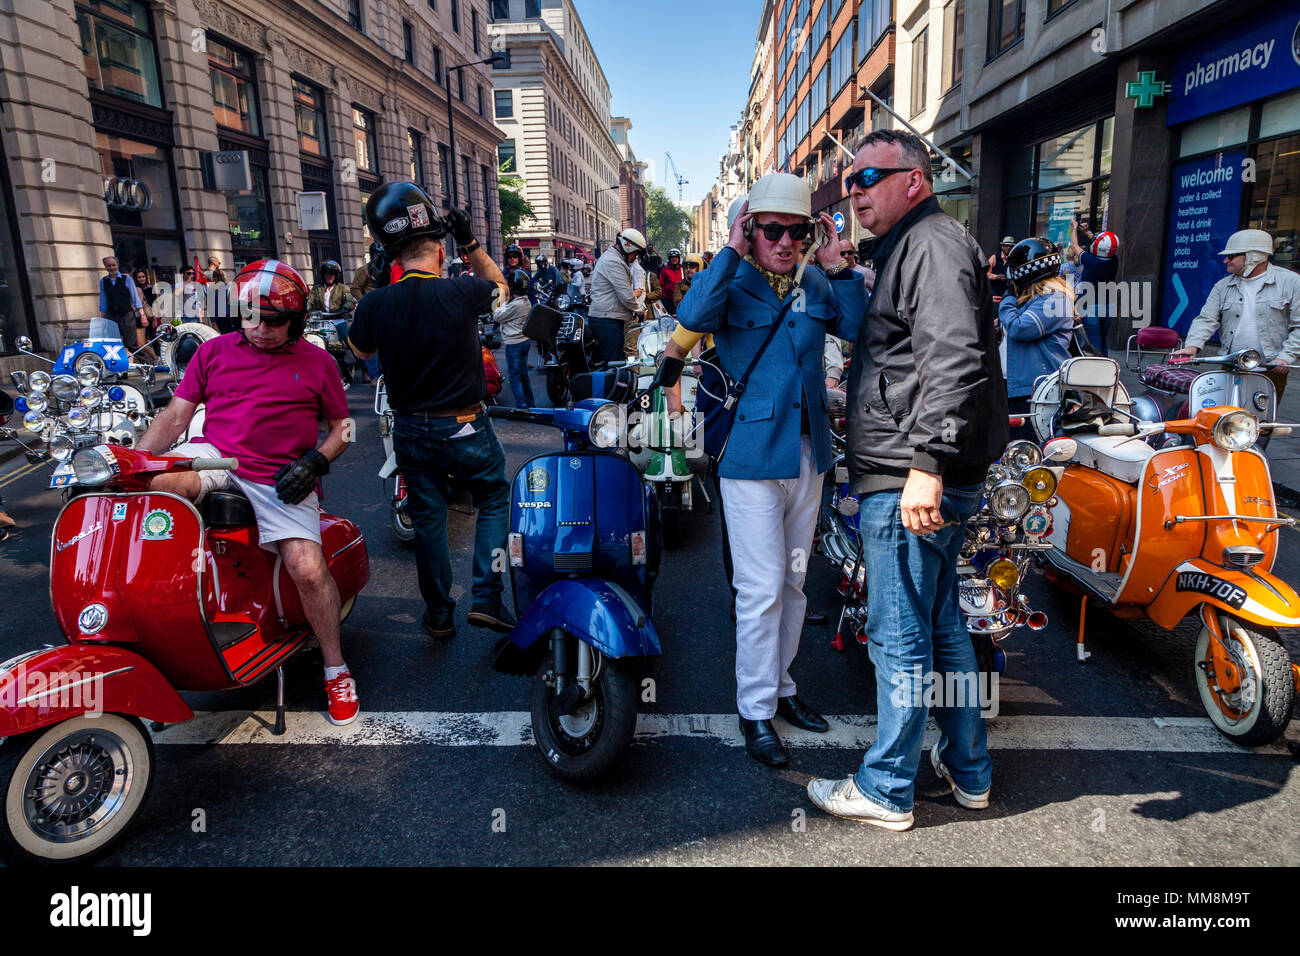 Scooter Owners Prepare To Take Part In A Bank Holiday Scooter Rally, London, England - Stock Image